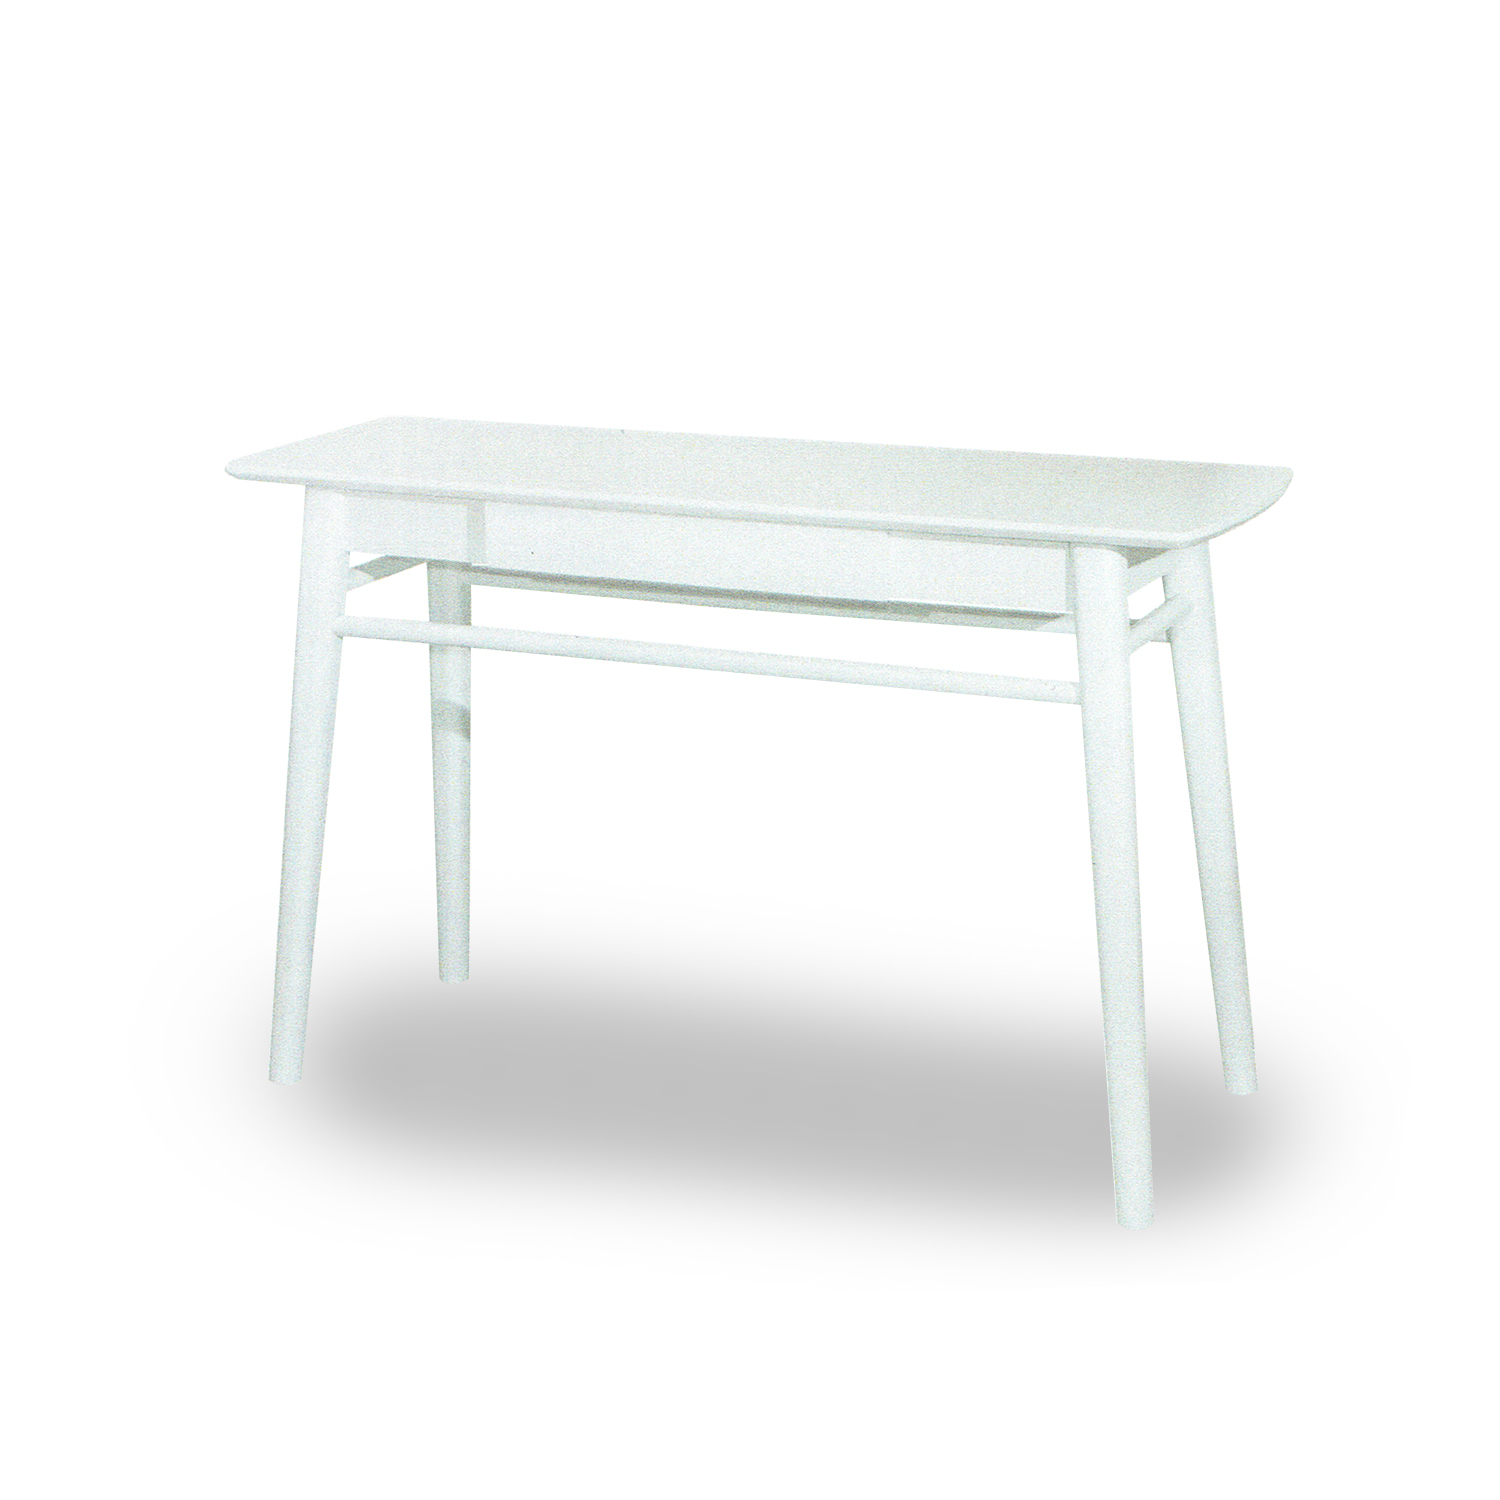 console table orlando natural.jpg